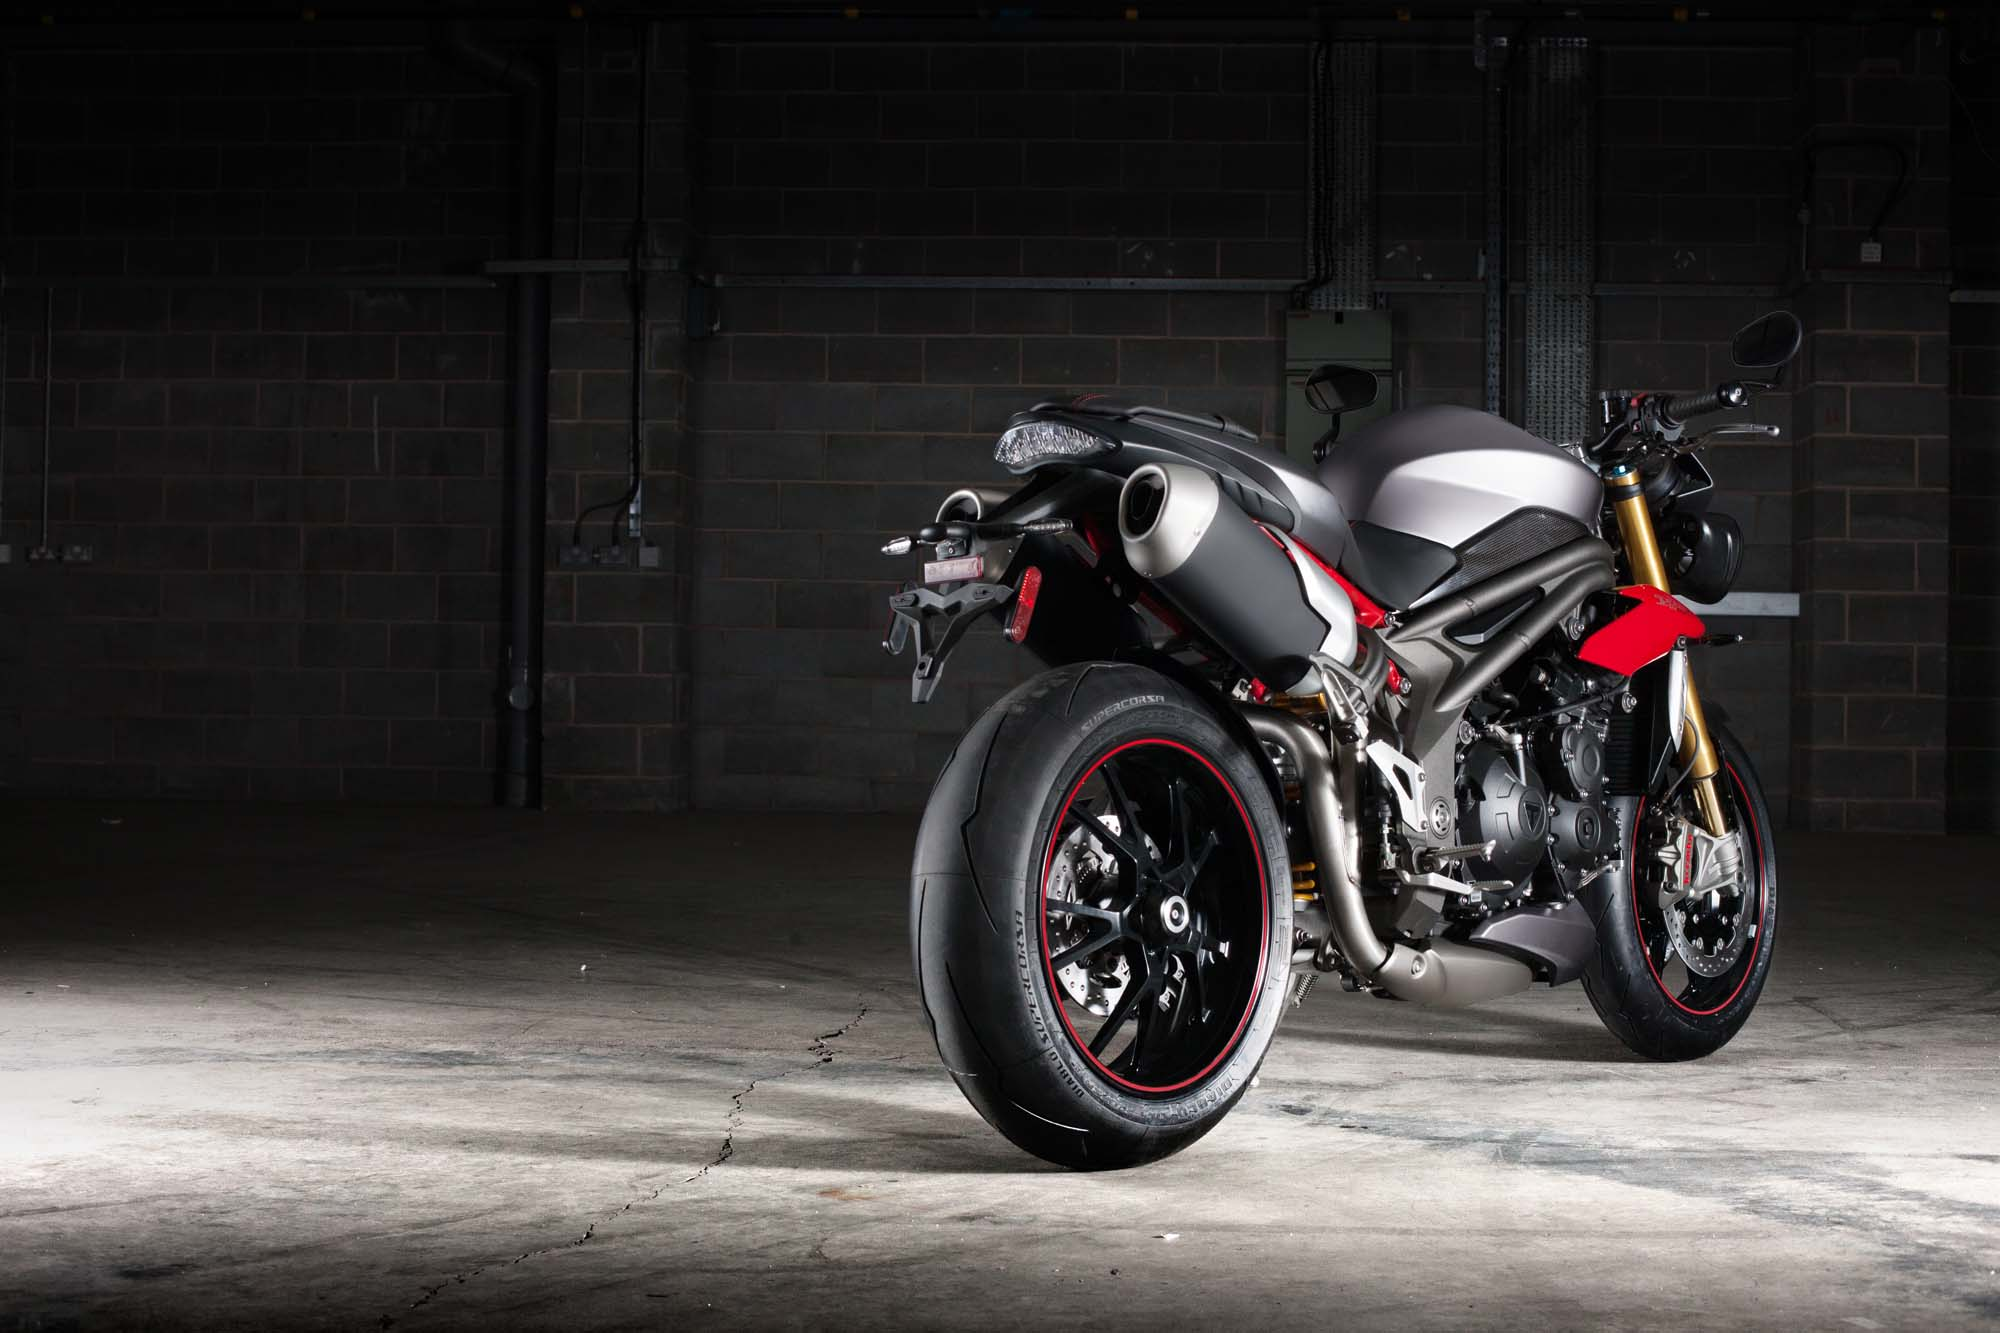 triumph speed triple r all technical data of the model speed triple r from triumph. Black Bedroom Furniture Sets. Home Design Ideas